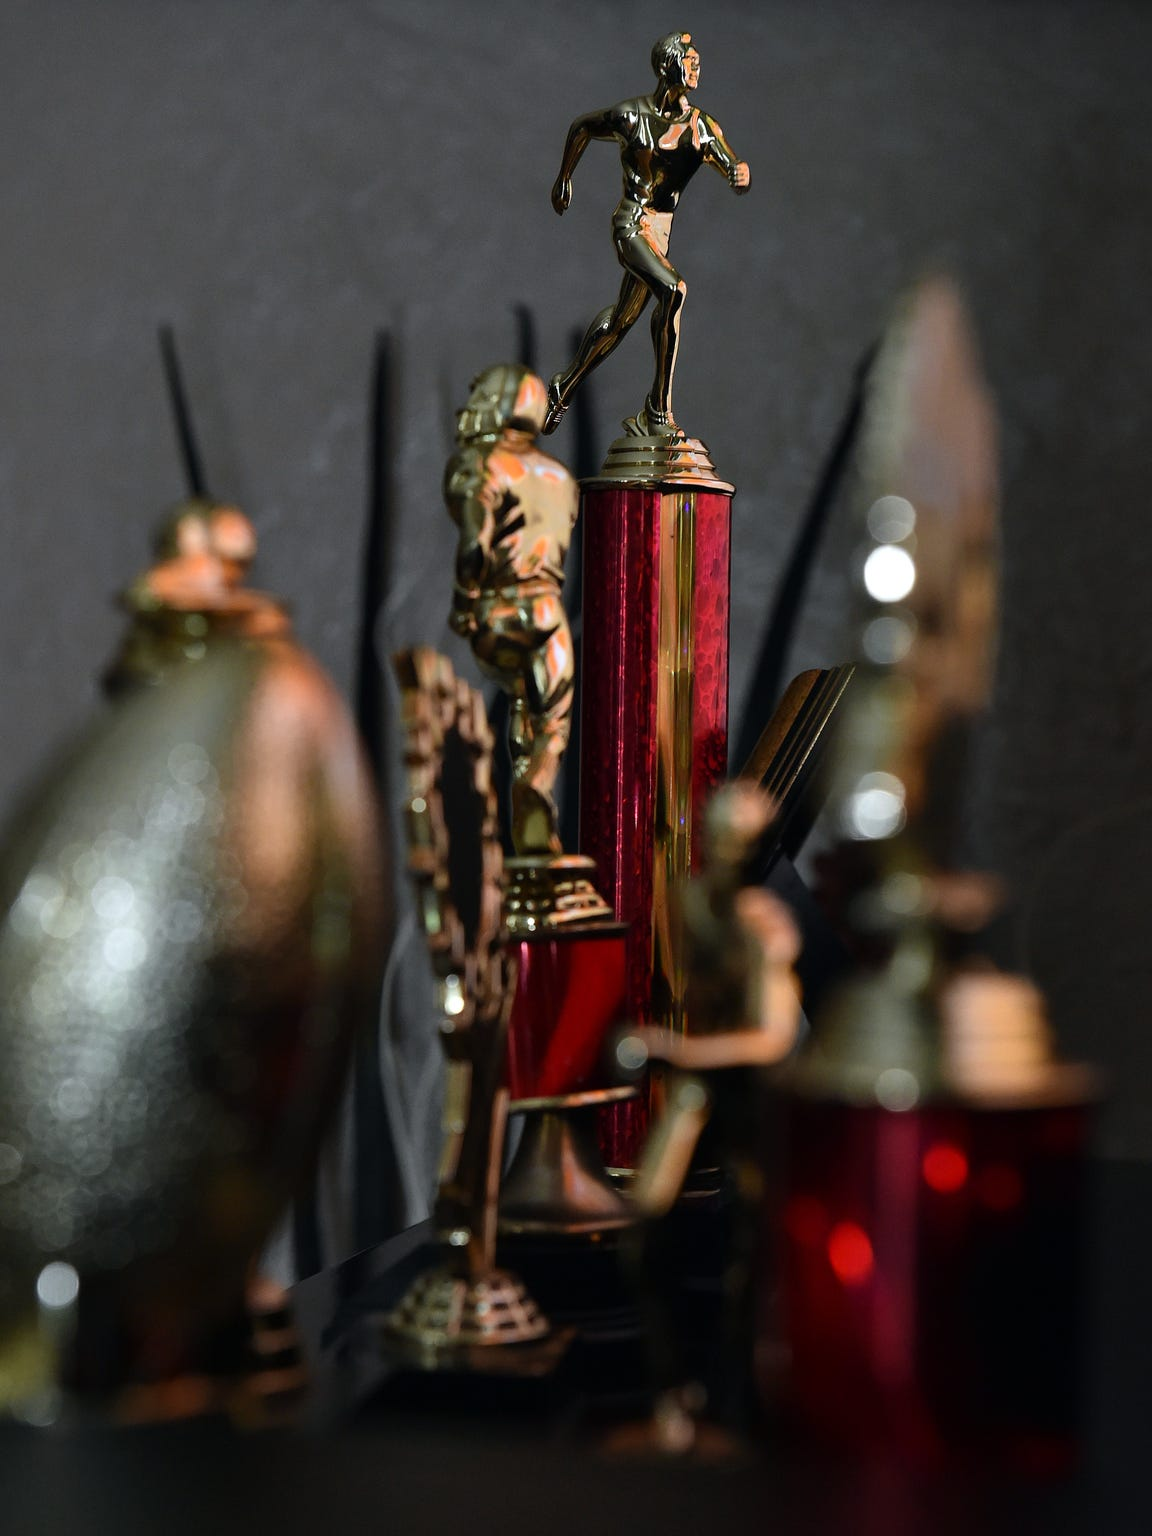 A row of Melvin Mangum Jr.'s trophies at his mother's